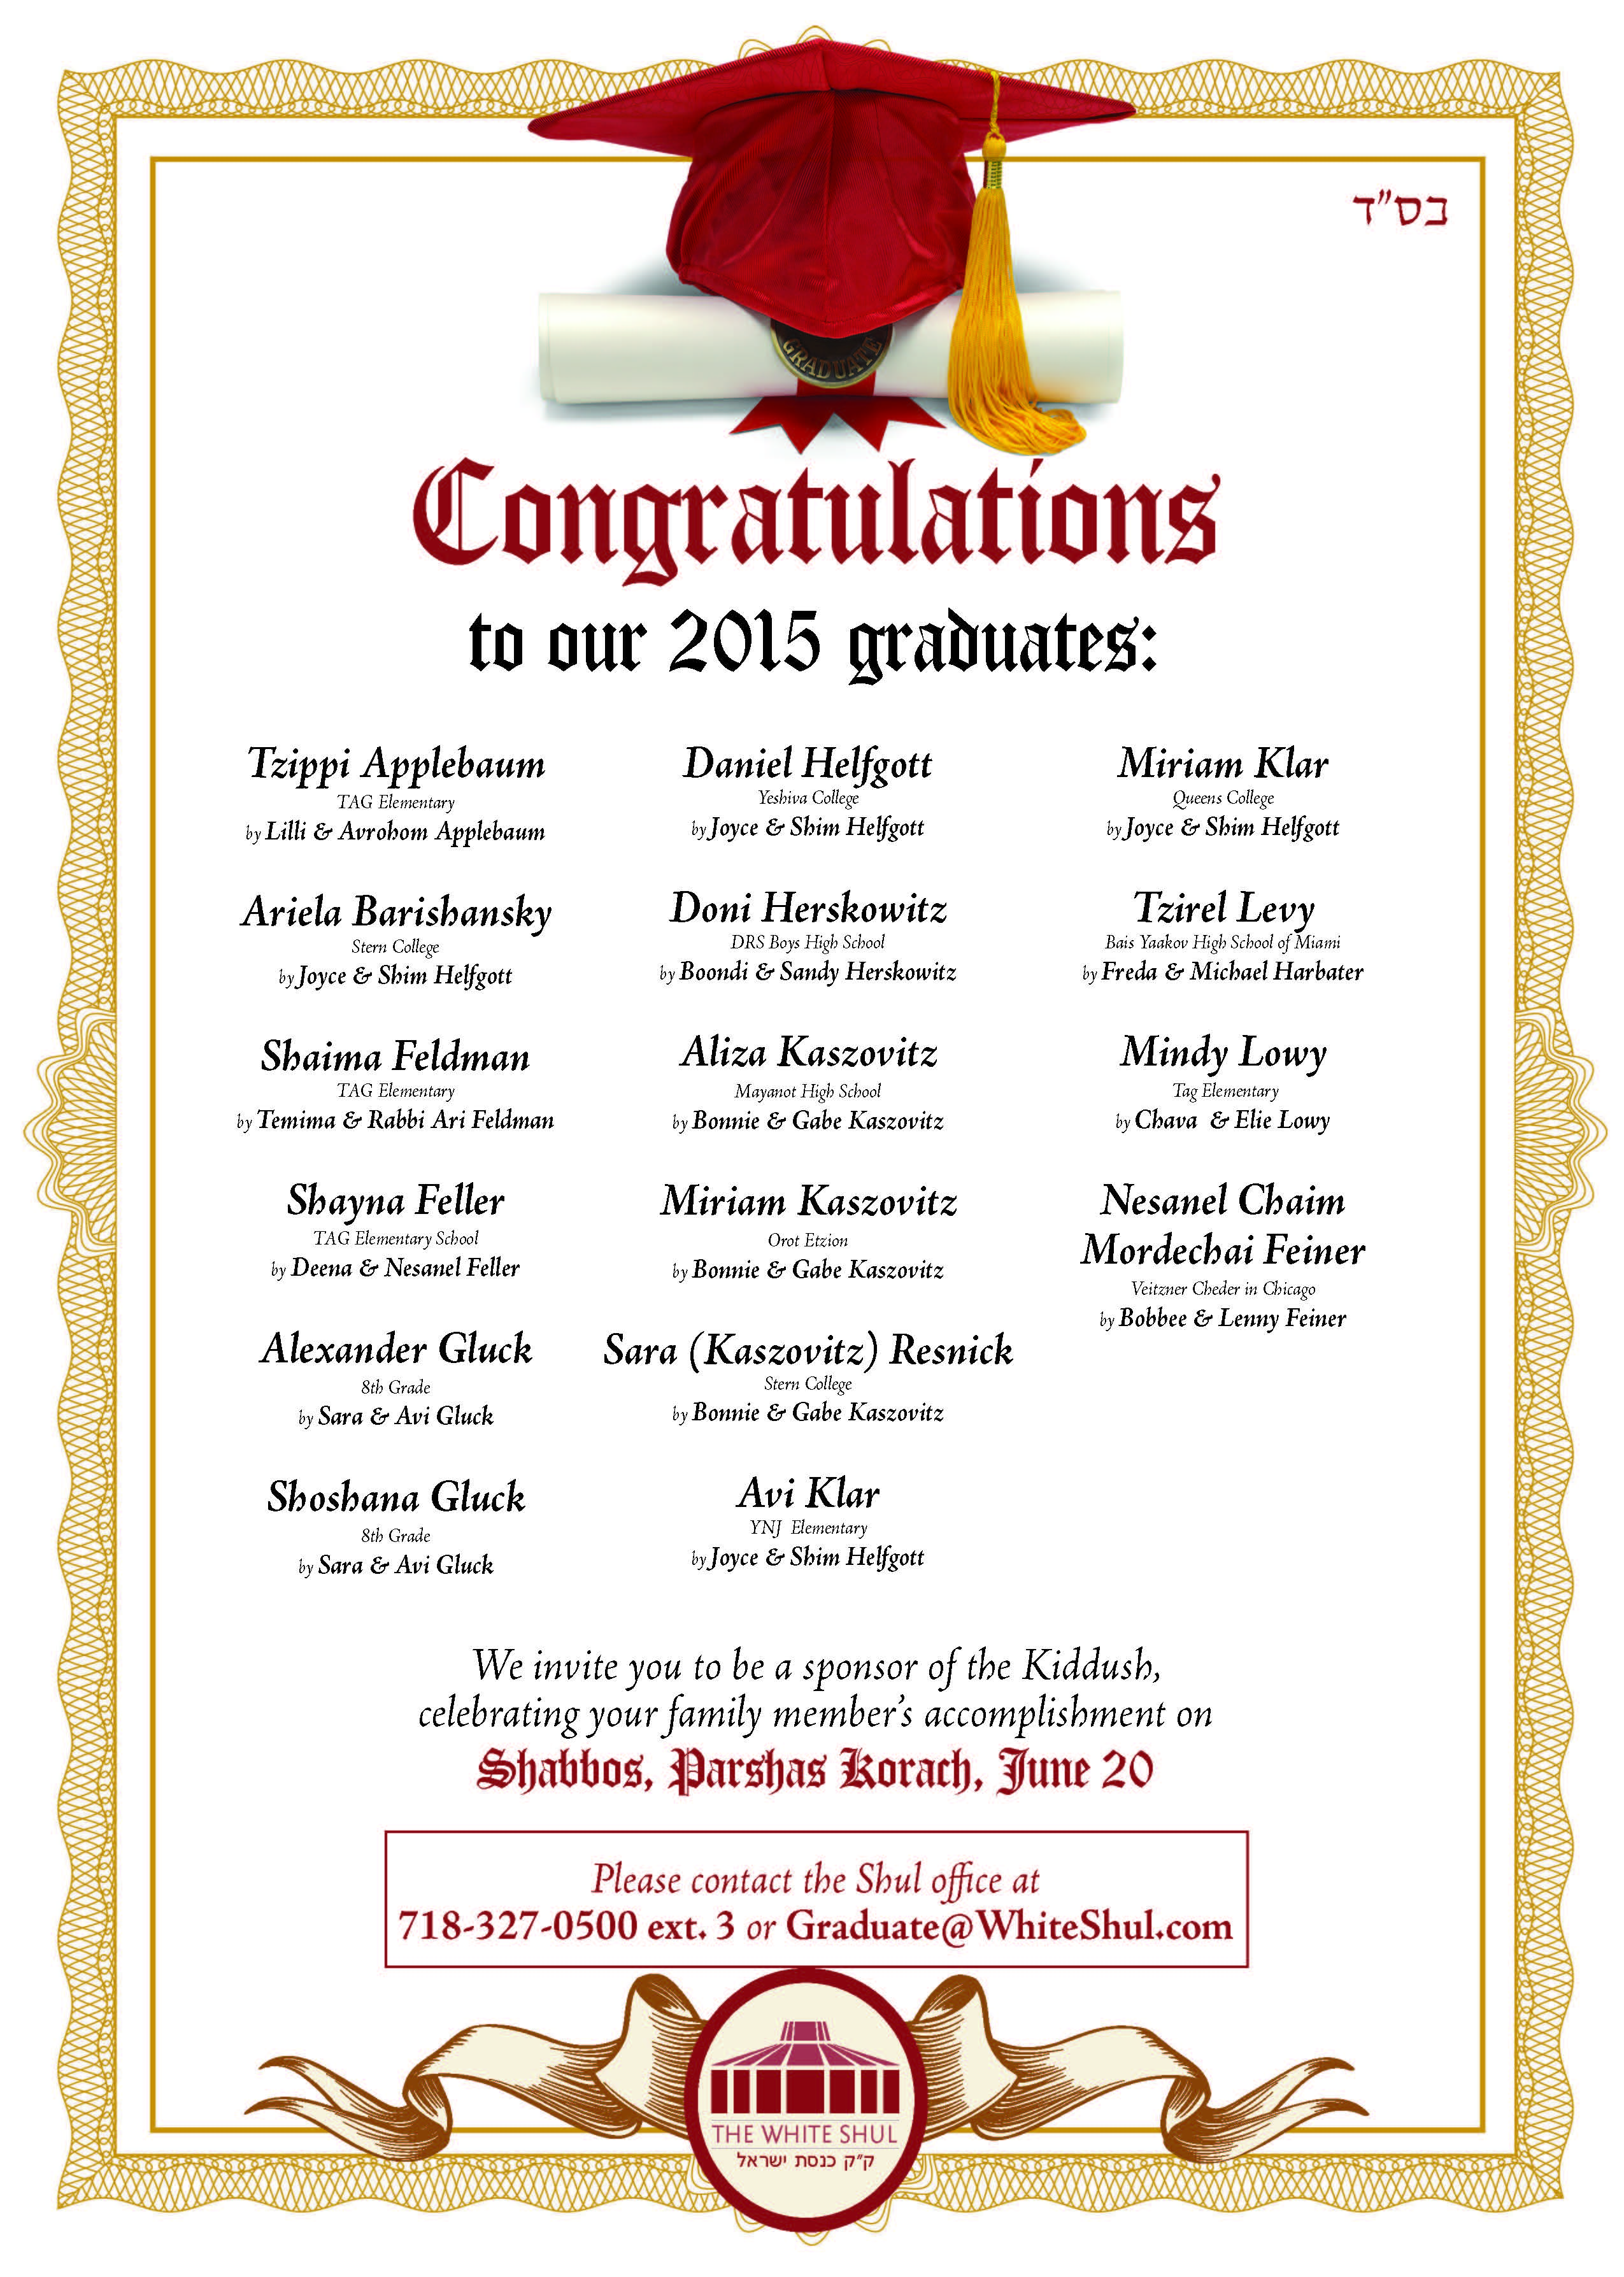 annual graduation kiddush event congregation kneseth member s accomplishment please contact the shul office 718 327 0500 ext 3 or shim helfgott at samson helfgott kattenlaw com we will list honor